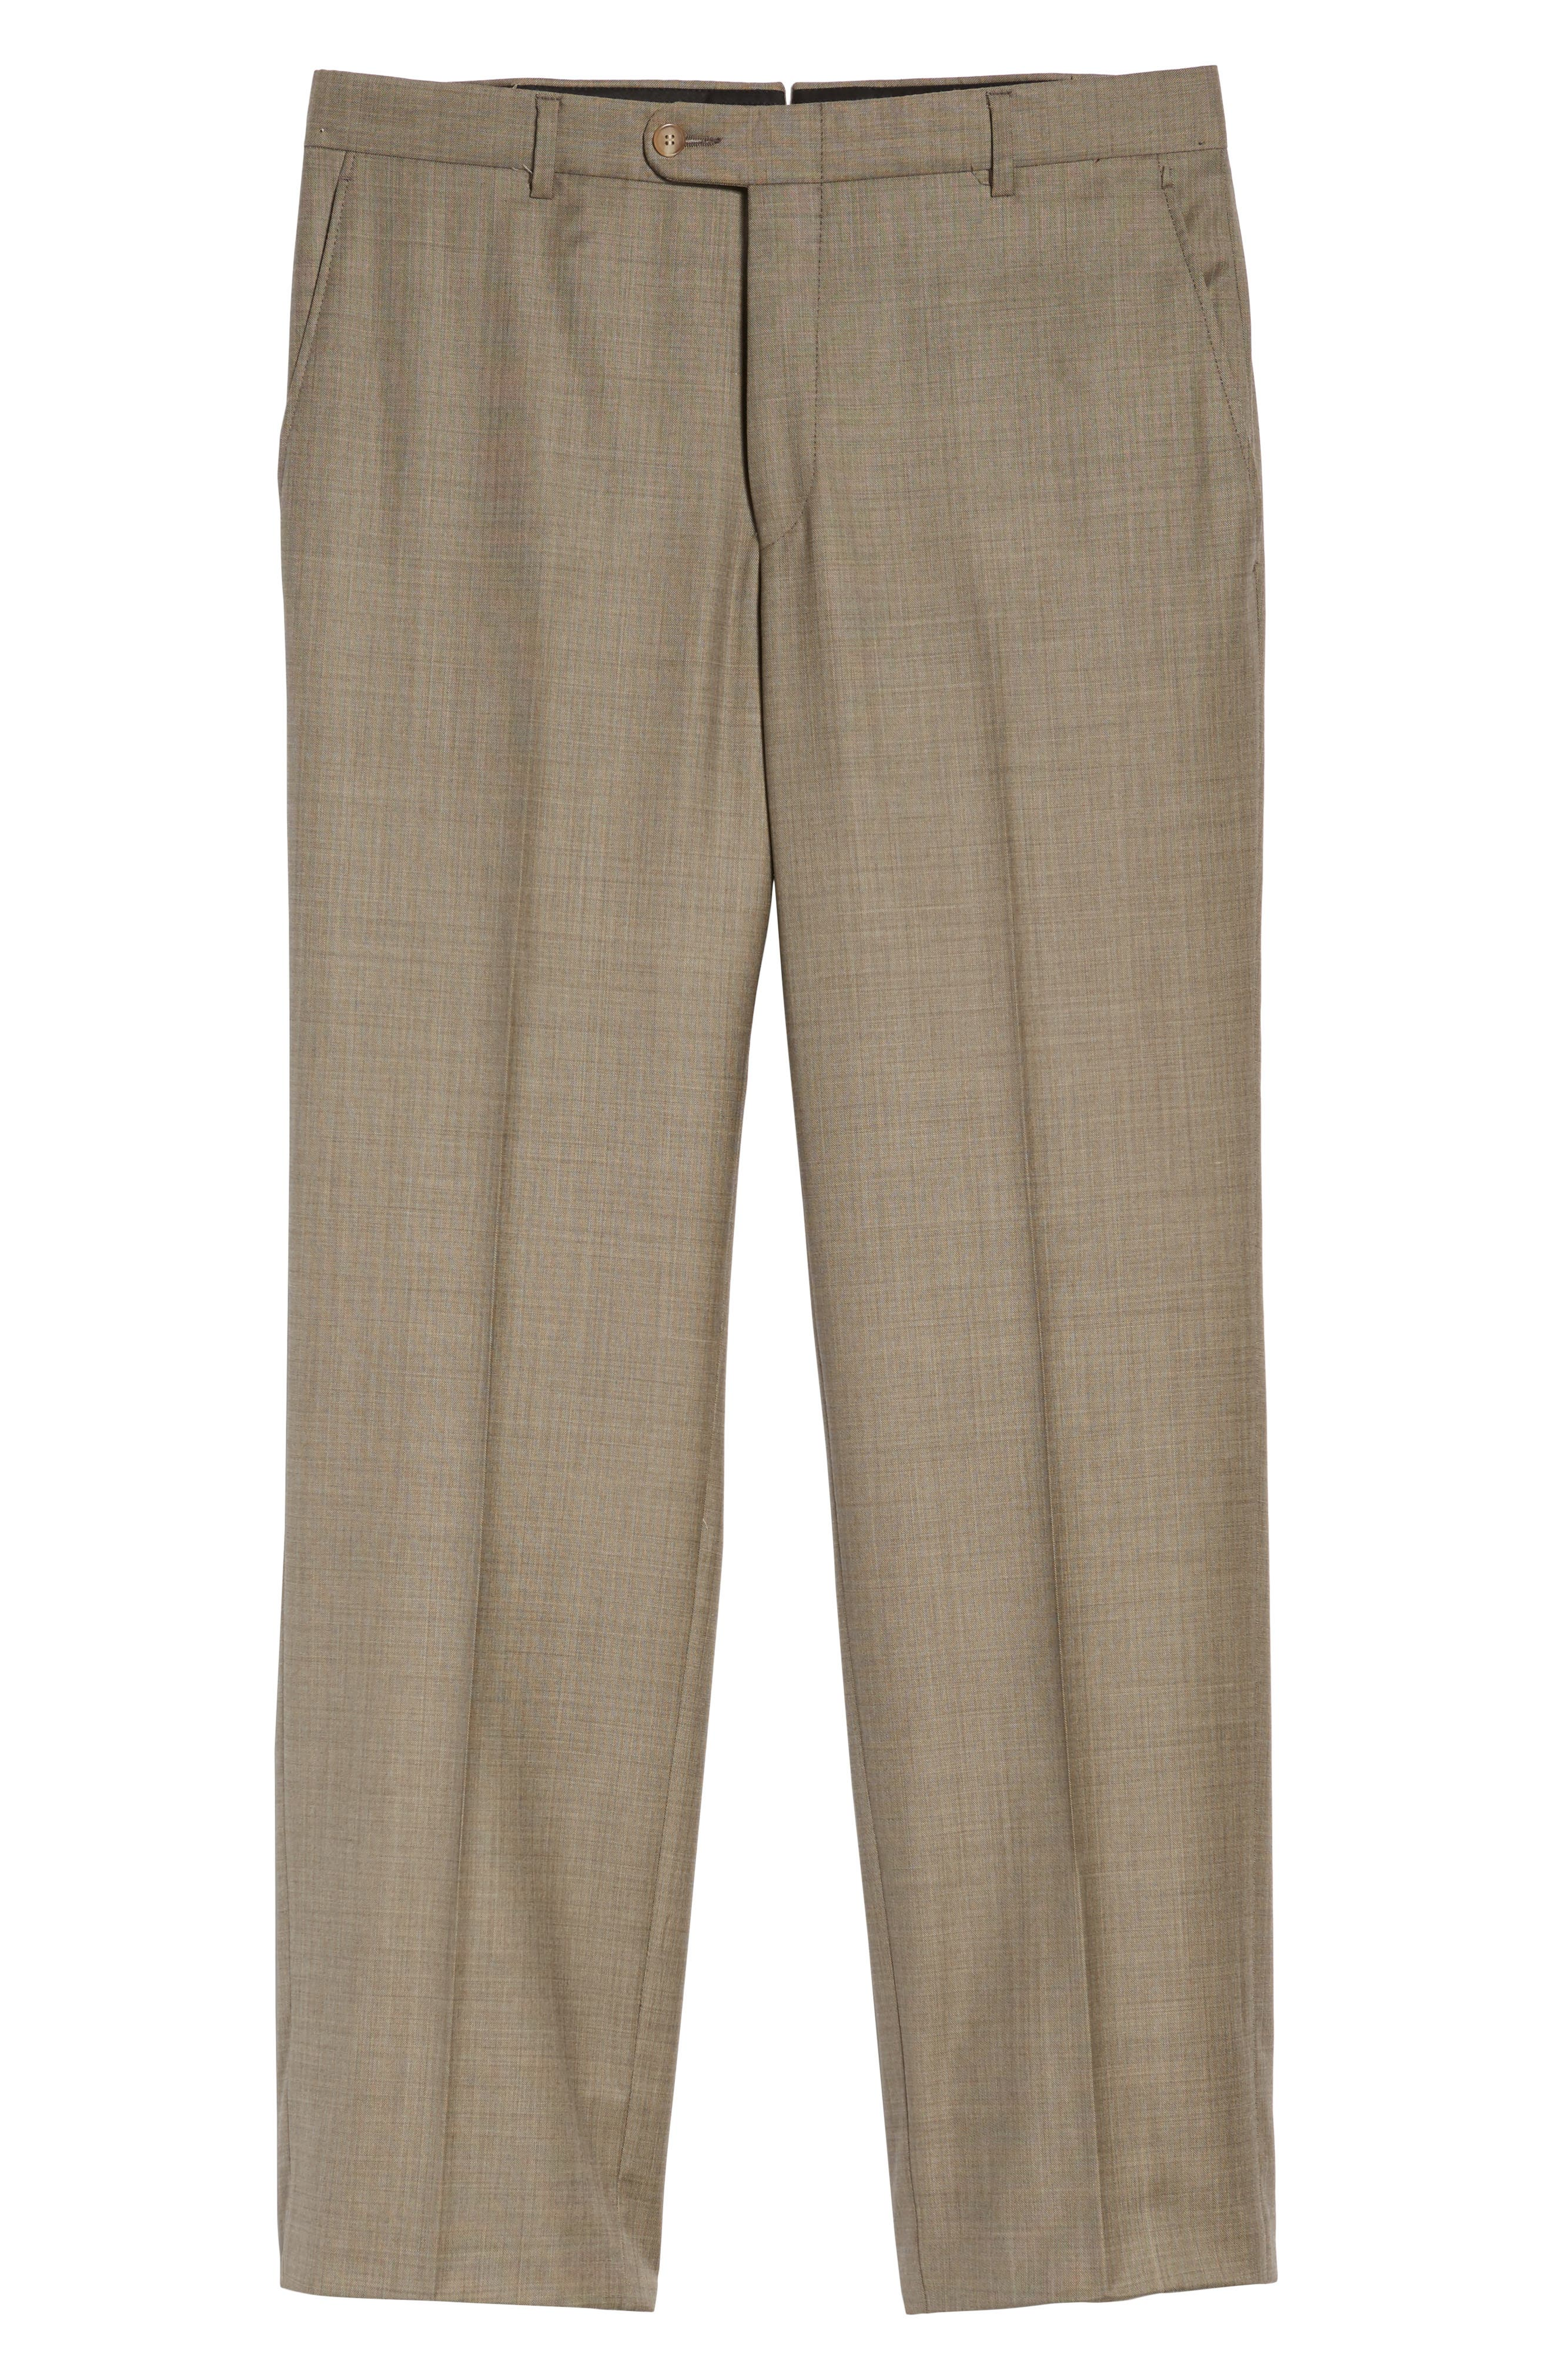 Classic B Fit Flat Front Solid Wool Trousers,                             Alternate thumbnail 6, color,                             TAN SHARKSKIN